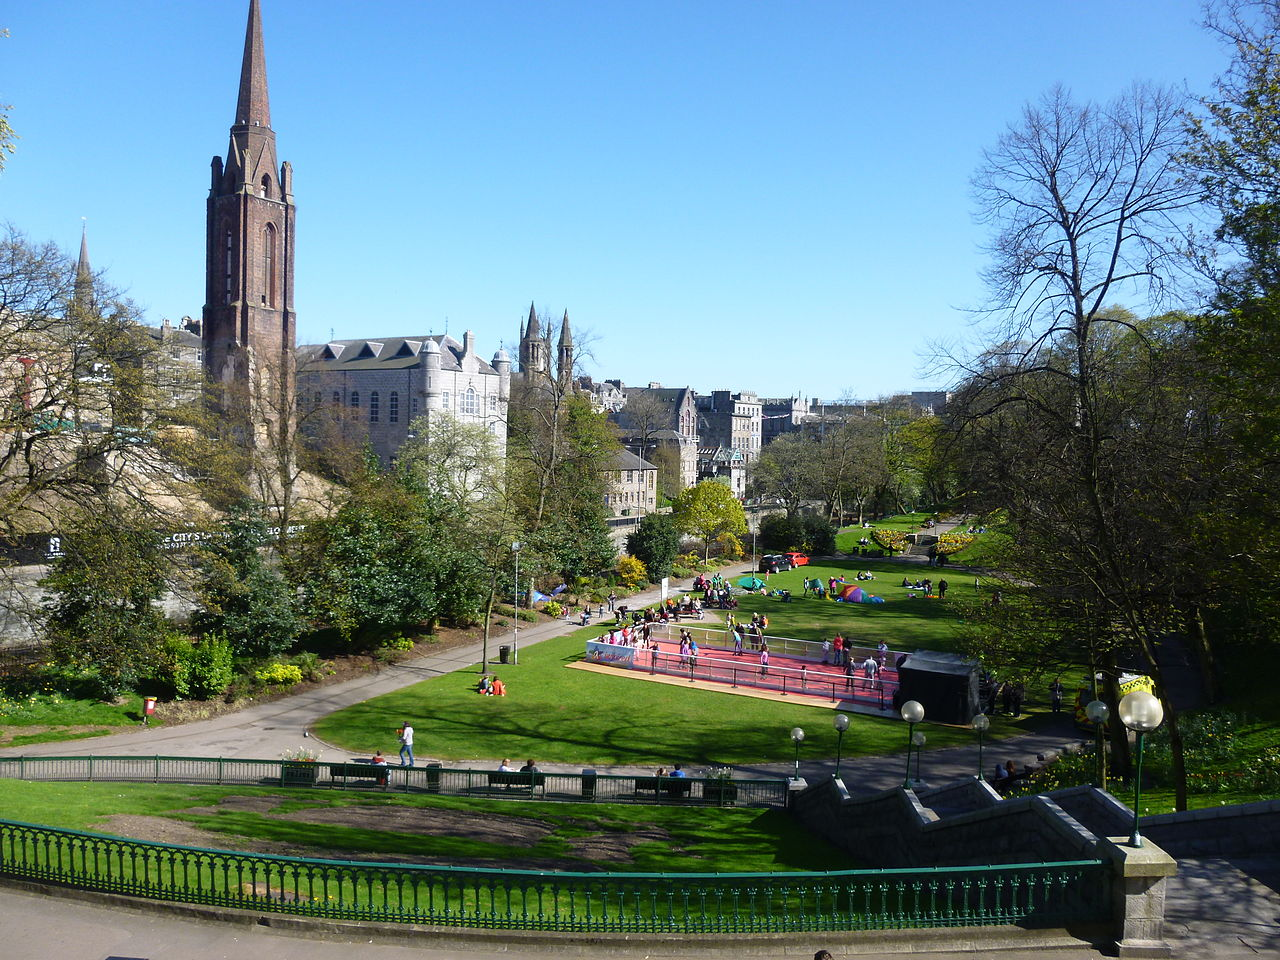 https://upload.wikimedia.org/wikipedia/commons/thumb/b/b0/Union_Terrace_Gardens%2C_Aberdeen.JPG/1280px-Union_Terrace_Gardens%2C_Aberdeen.JPG